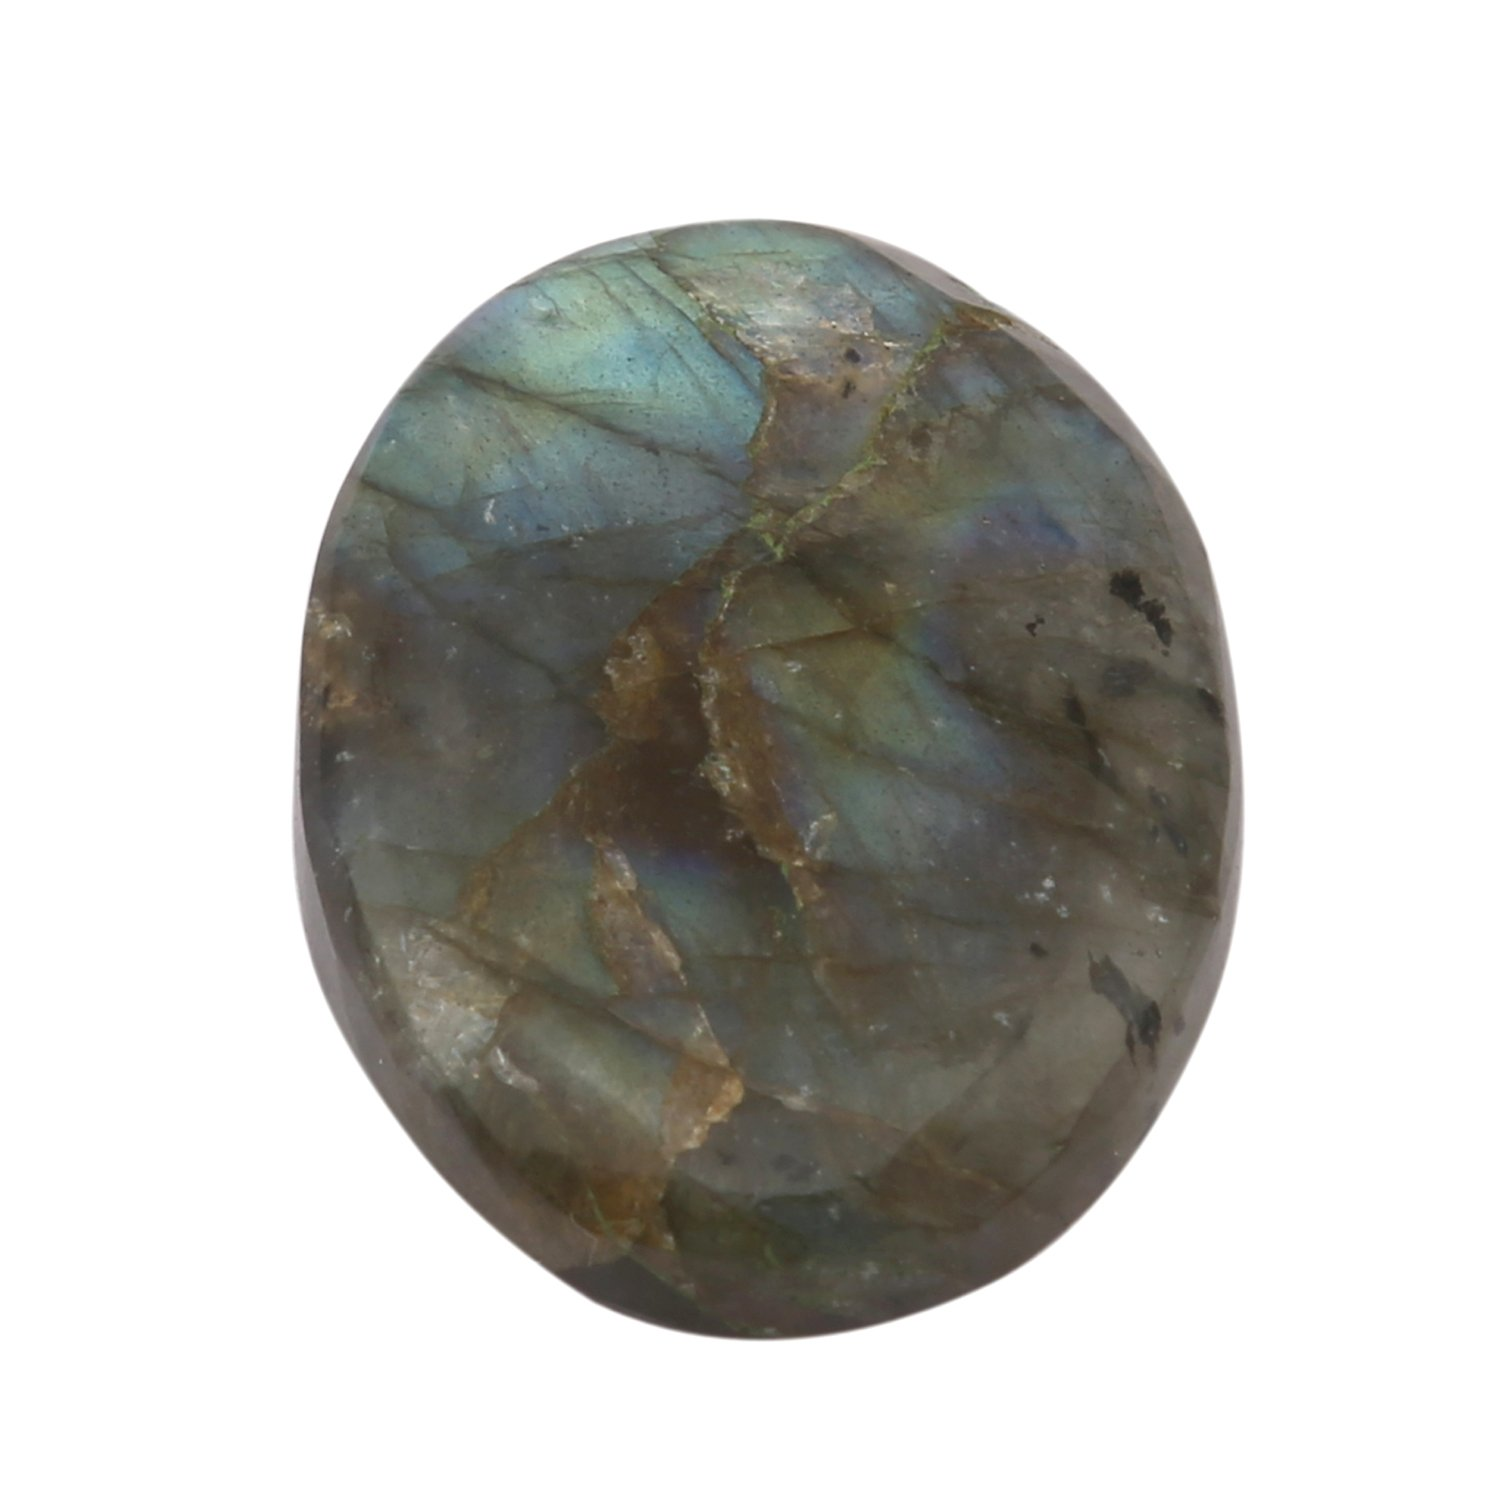 Aatm Healing Stone Labradorite Crystal Cabochon Pocket Stone (Stone of Transformation) Aatm Collection CNGPC-22